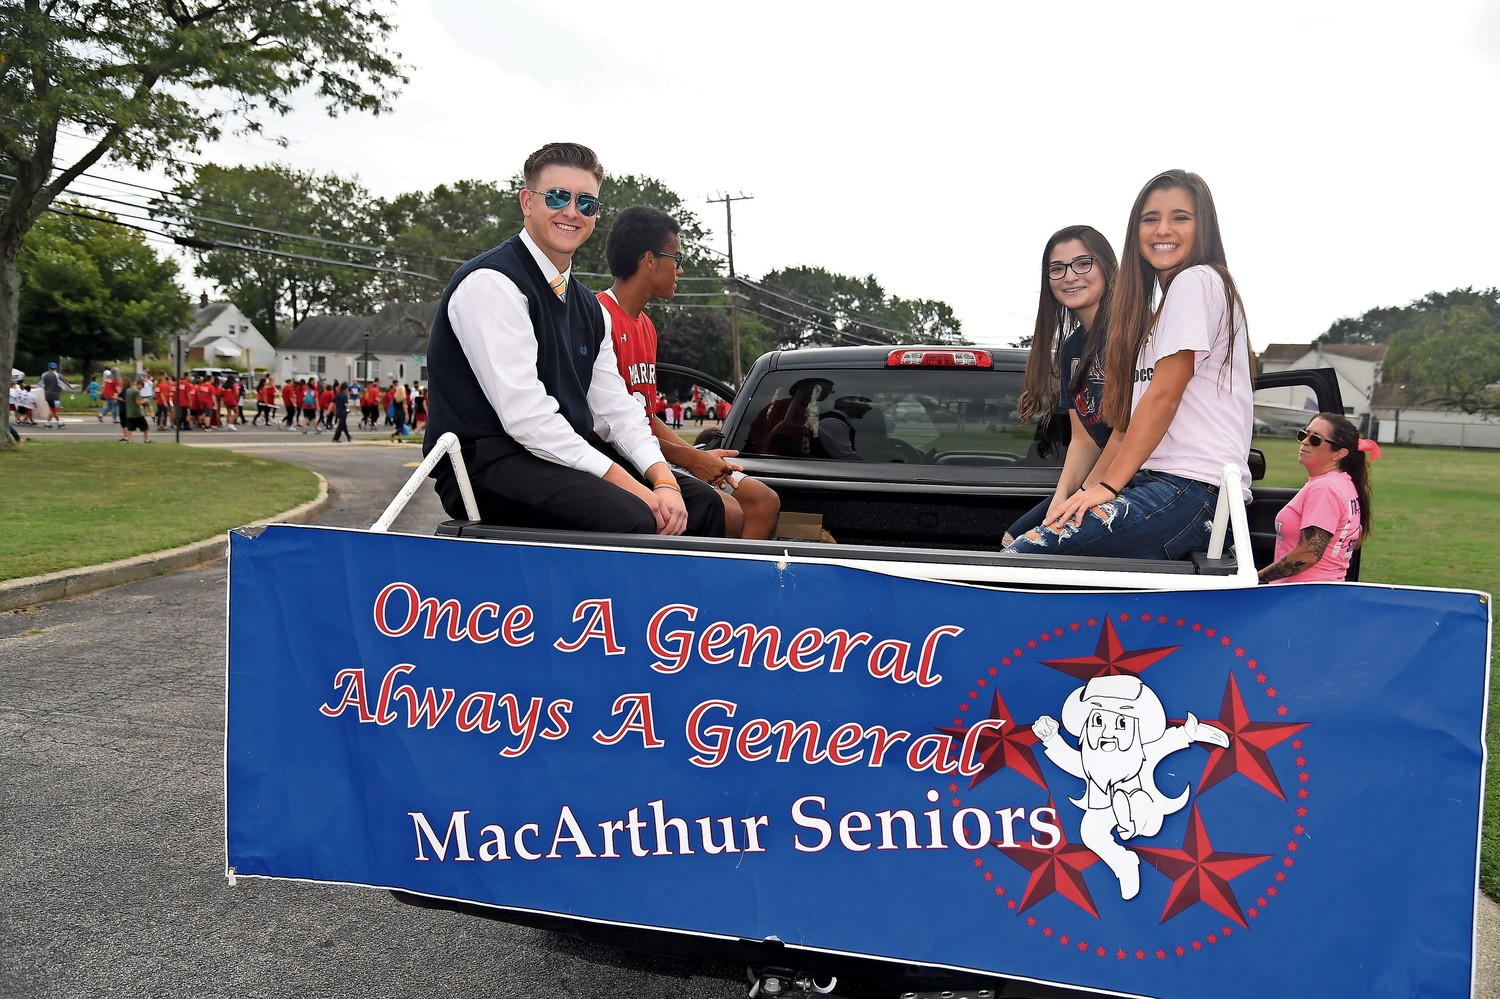 MacArthur High School seniors represented their class in the Homecoming parade on Sept. 16.